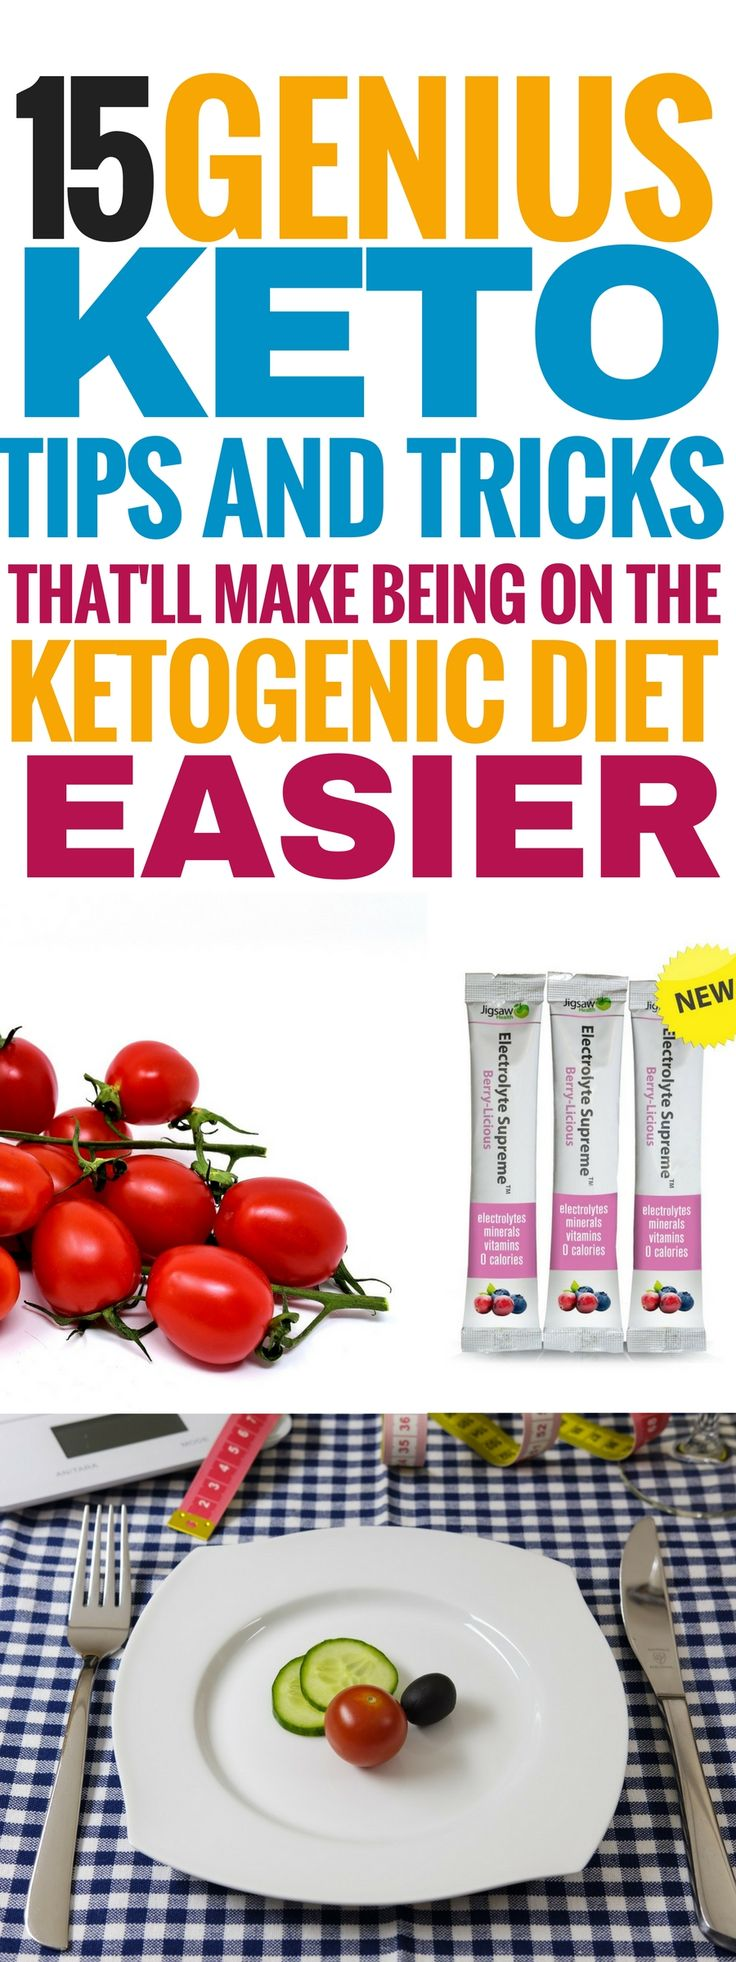 2202 best Ketogenic Lifestyle images on Pinterest | Keto recipes, Keto foods and Ketogenic diet